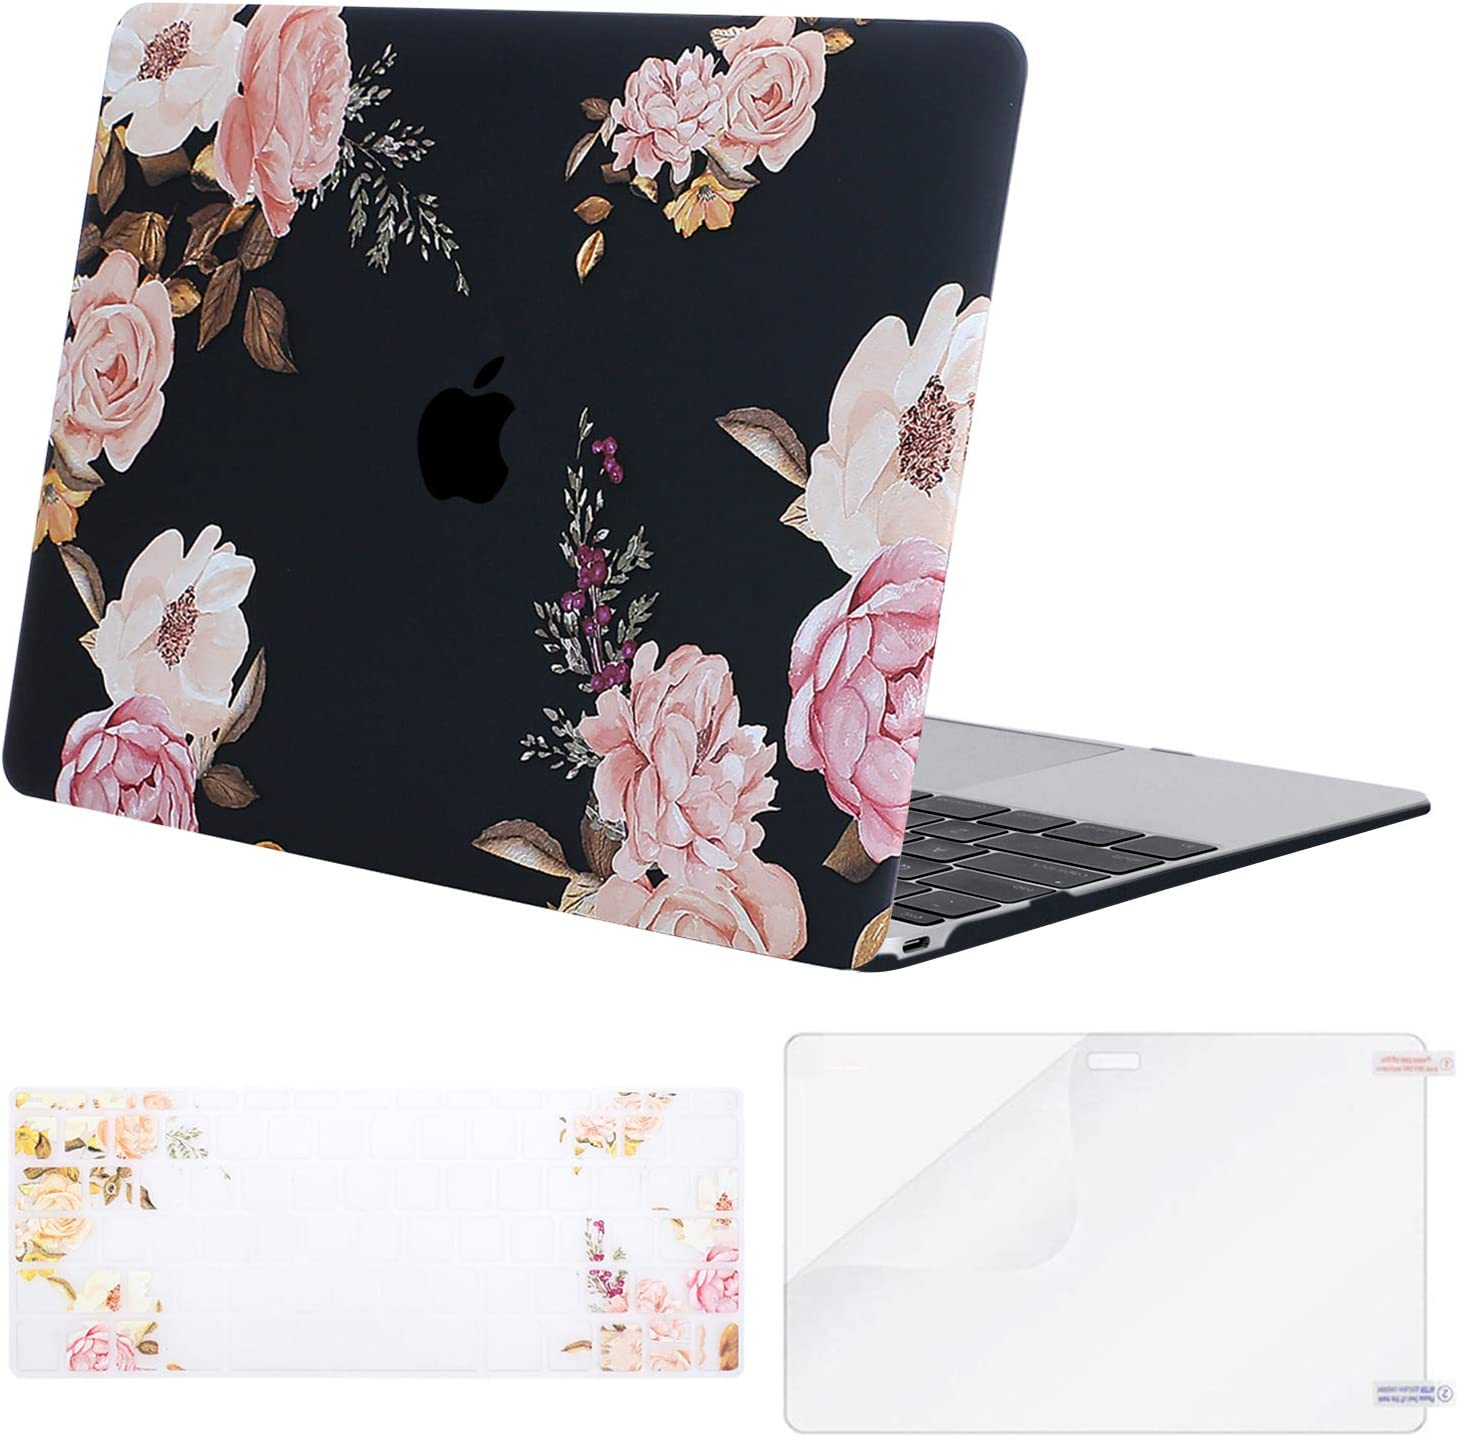 MOSISO MacBook 12 inch Case (Model A1534, Release 2017 2016 2015), Plastic Peony Hard Shell Case & Keyboard Cover & Screen Protector Compatible with MacBook 12 inch with Retina Display, Black